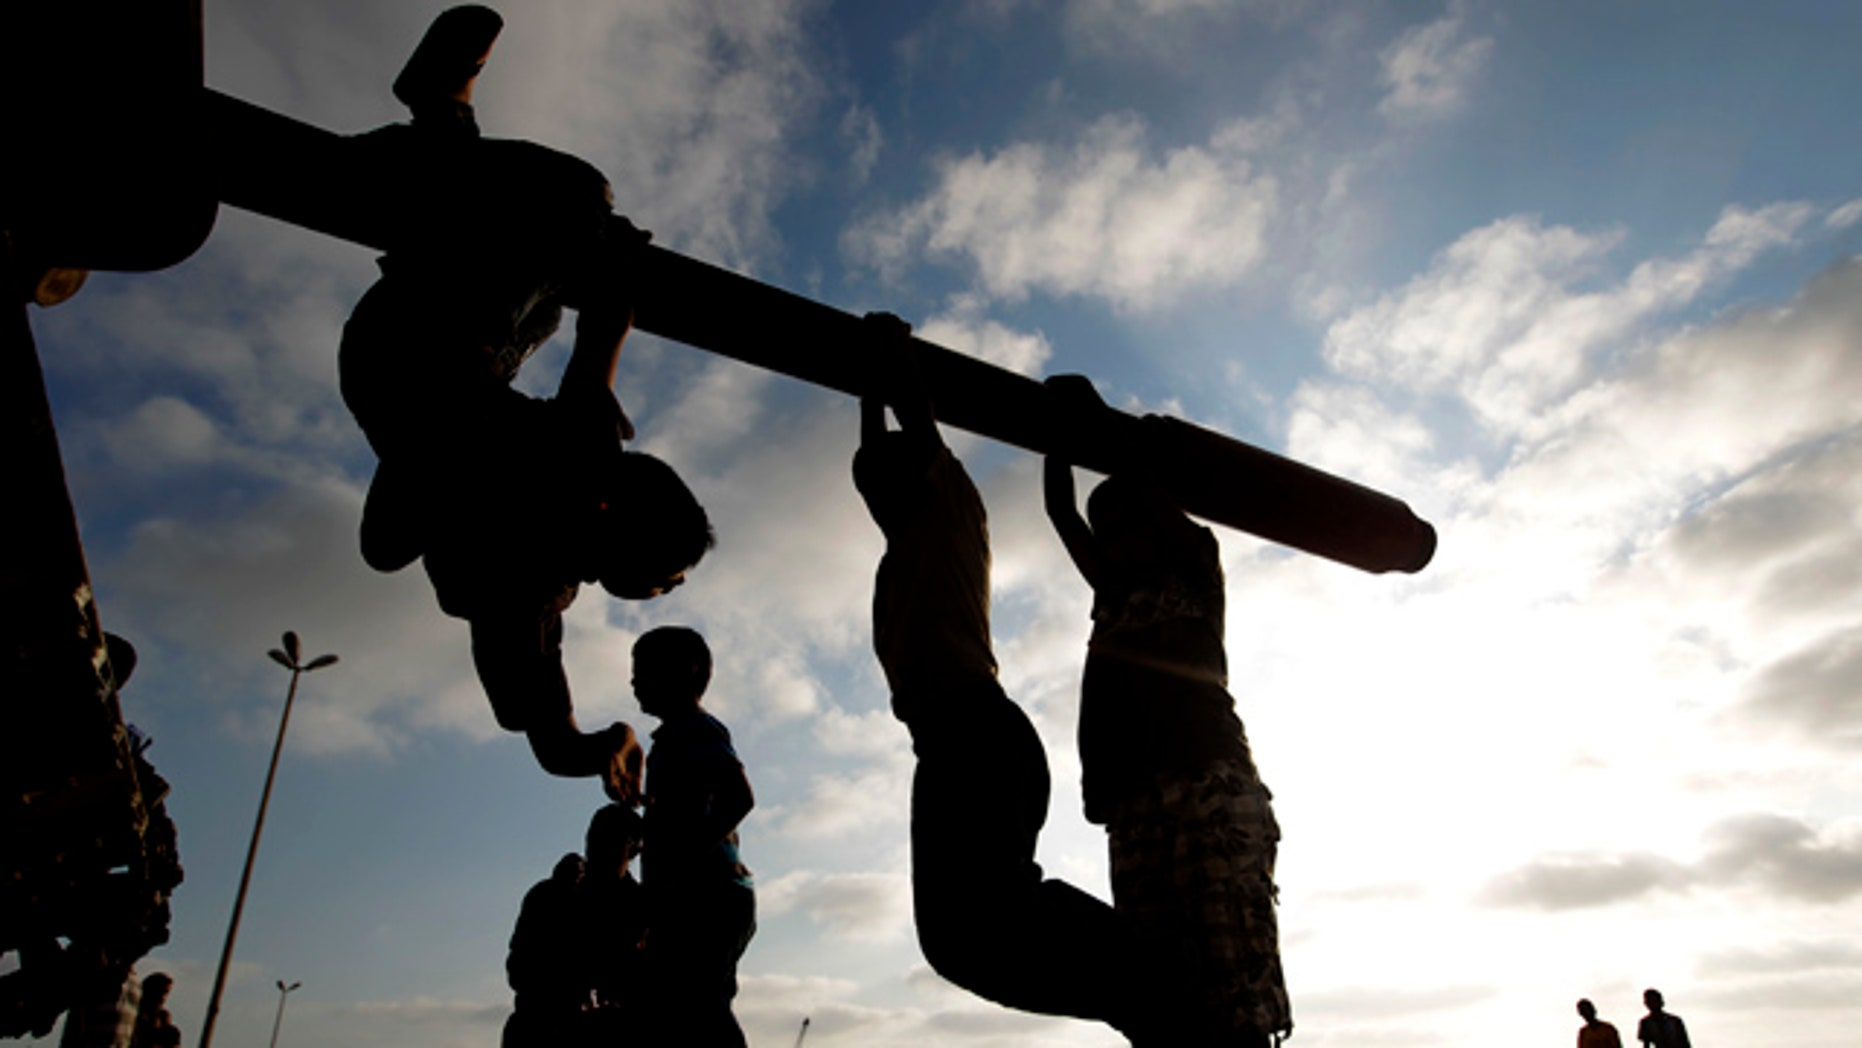 July 2: Libyan boys sit on the cannon of a destroyed army tank in the rebel-held Benghazi, Libya.